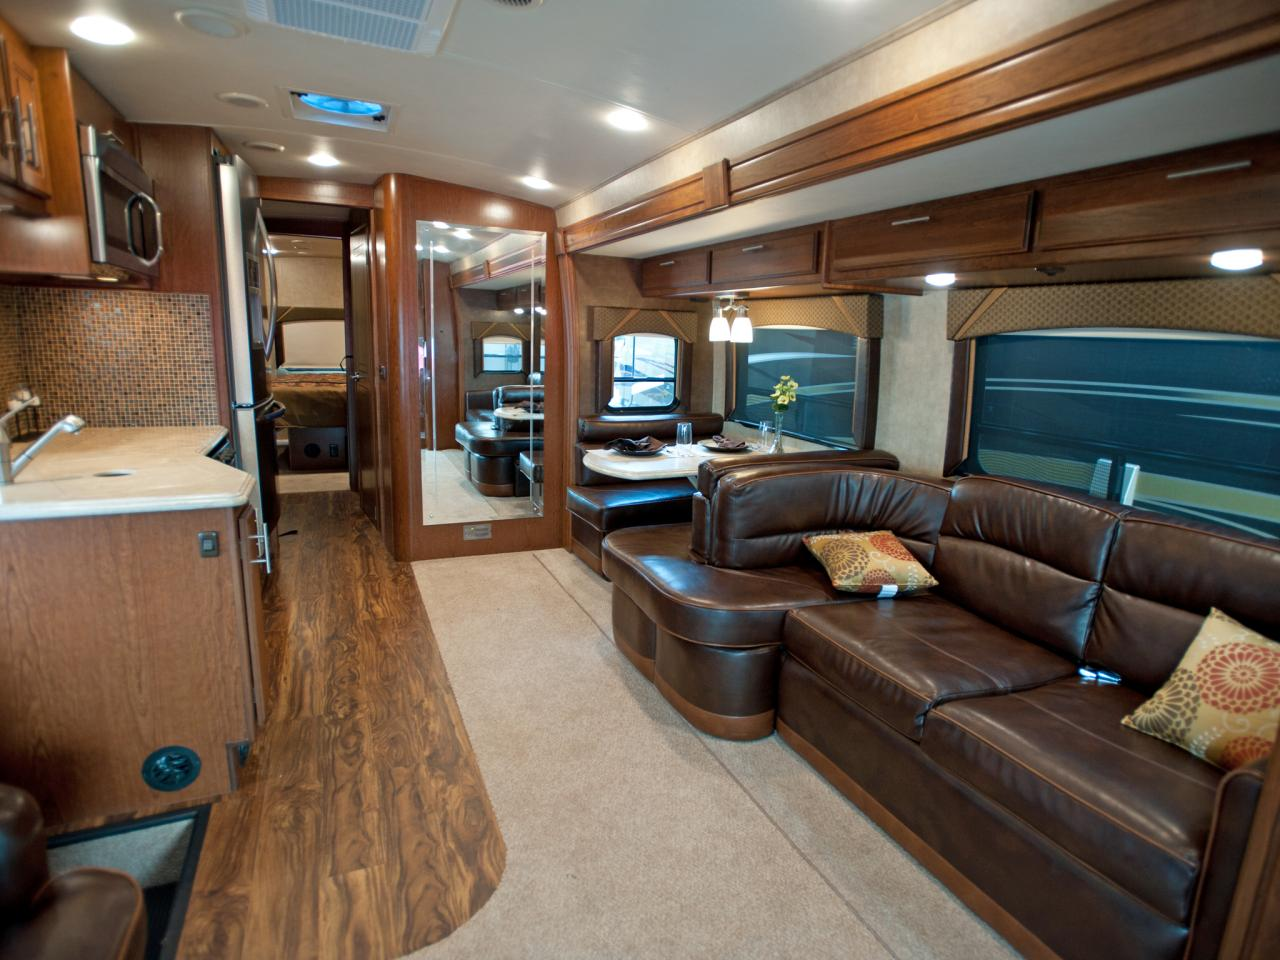 Stunning rv interior design homesfeed for Interior motorhome designs